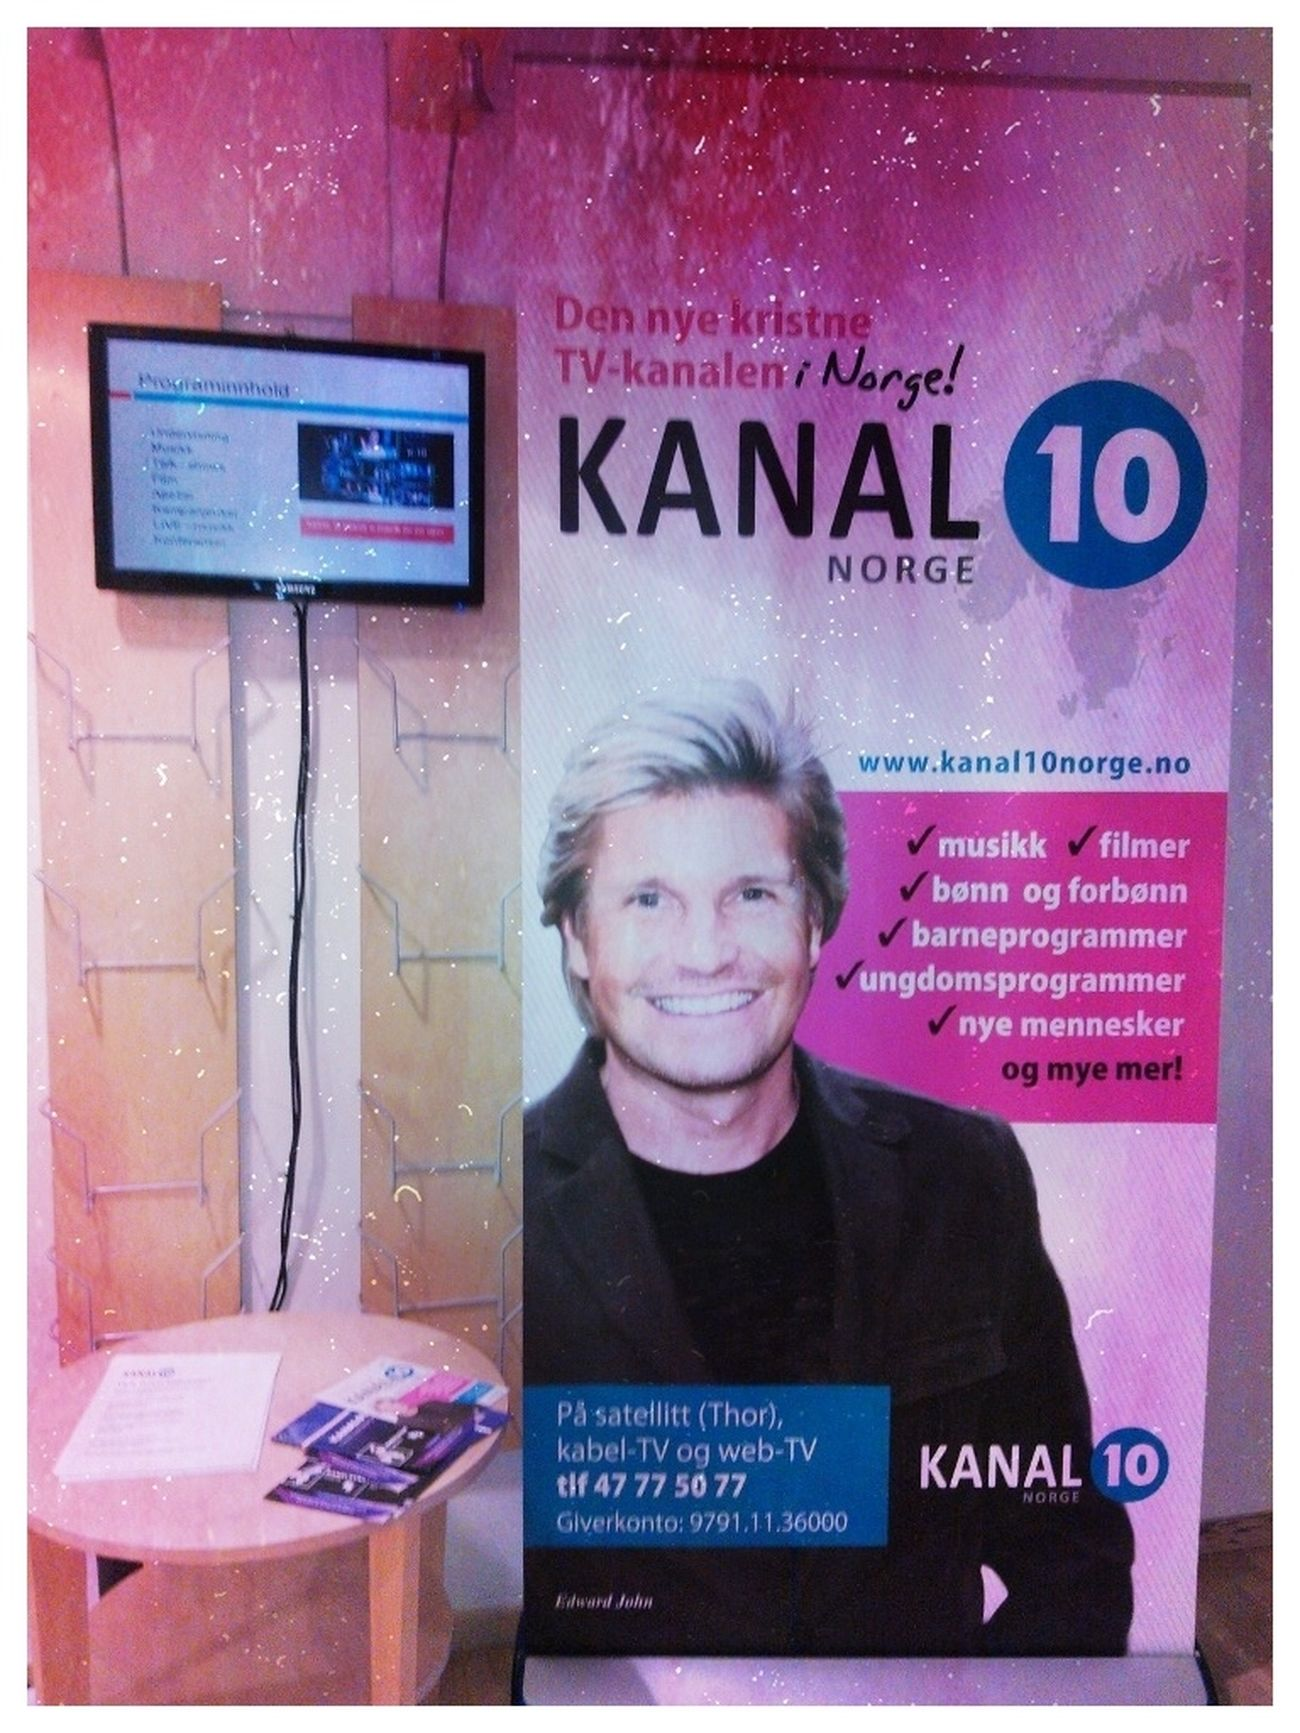 Day Tooh At Kanal 10, Interview Day!